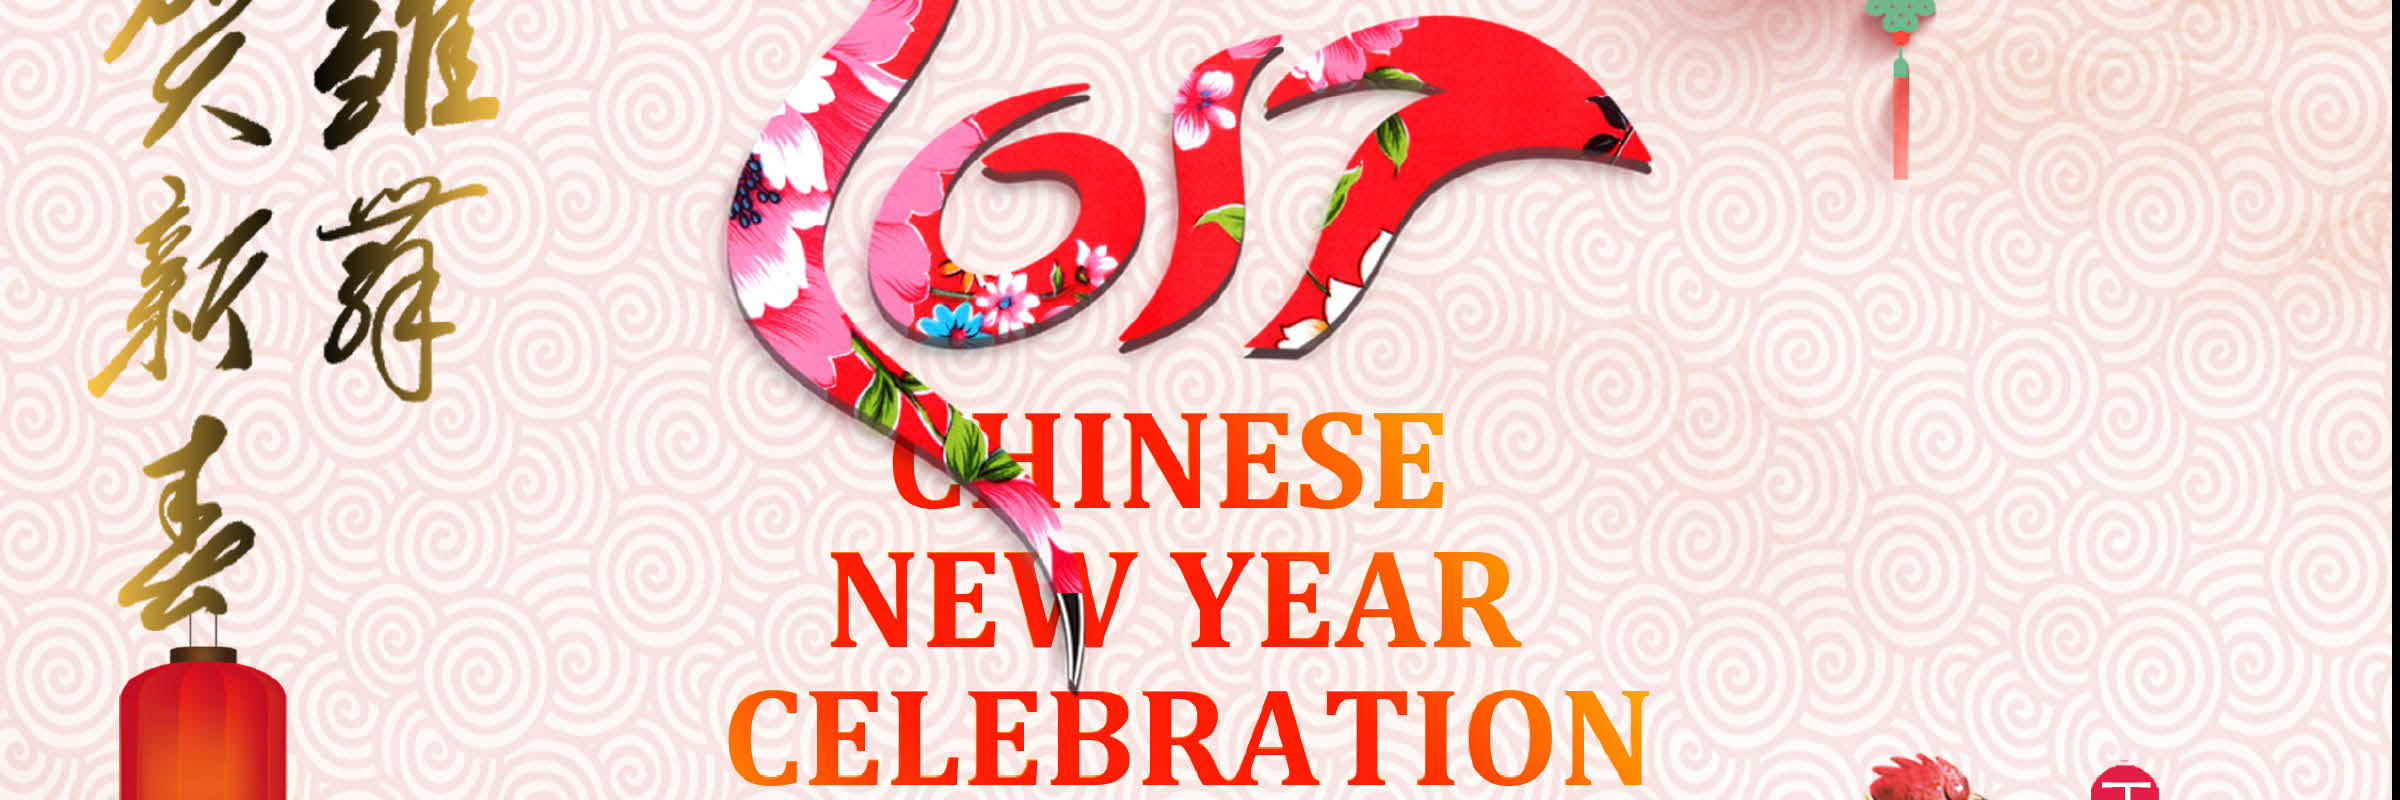 Conejo Chinese Cultural Association's Chinese New Year Celebration